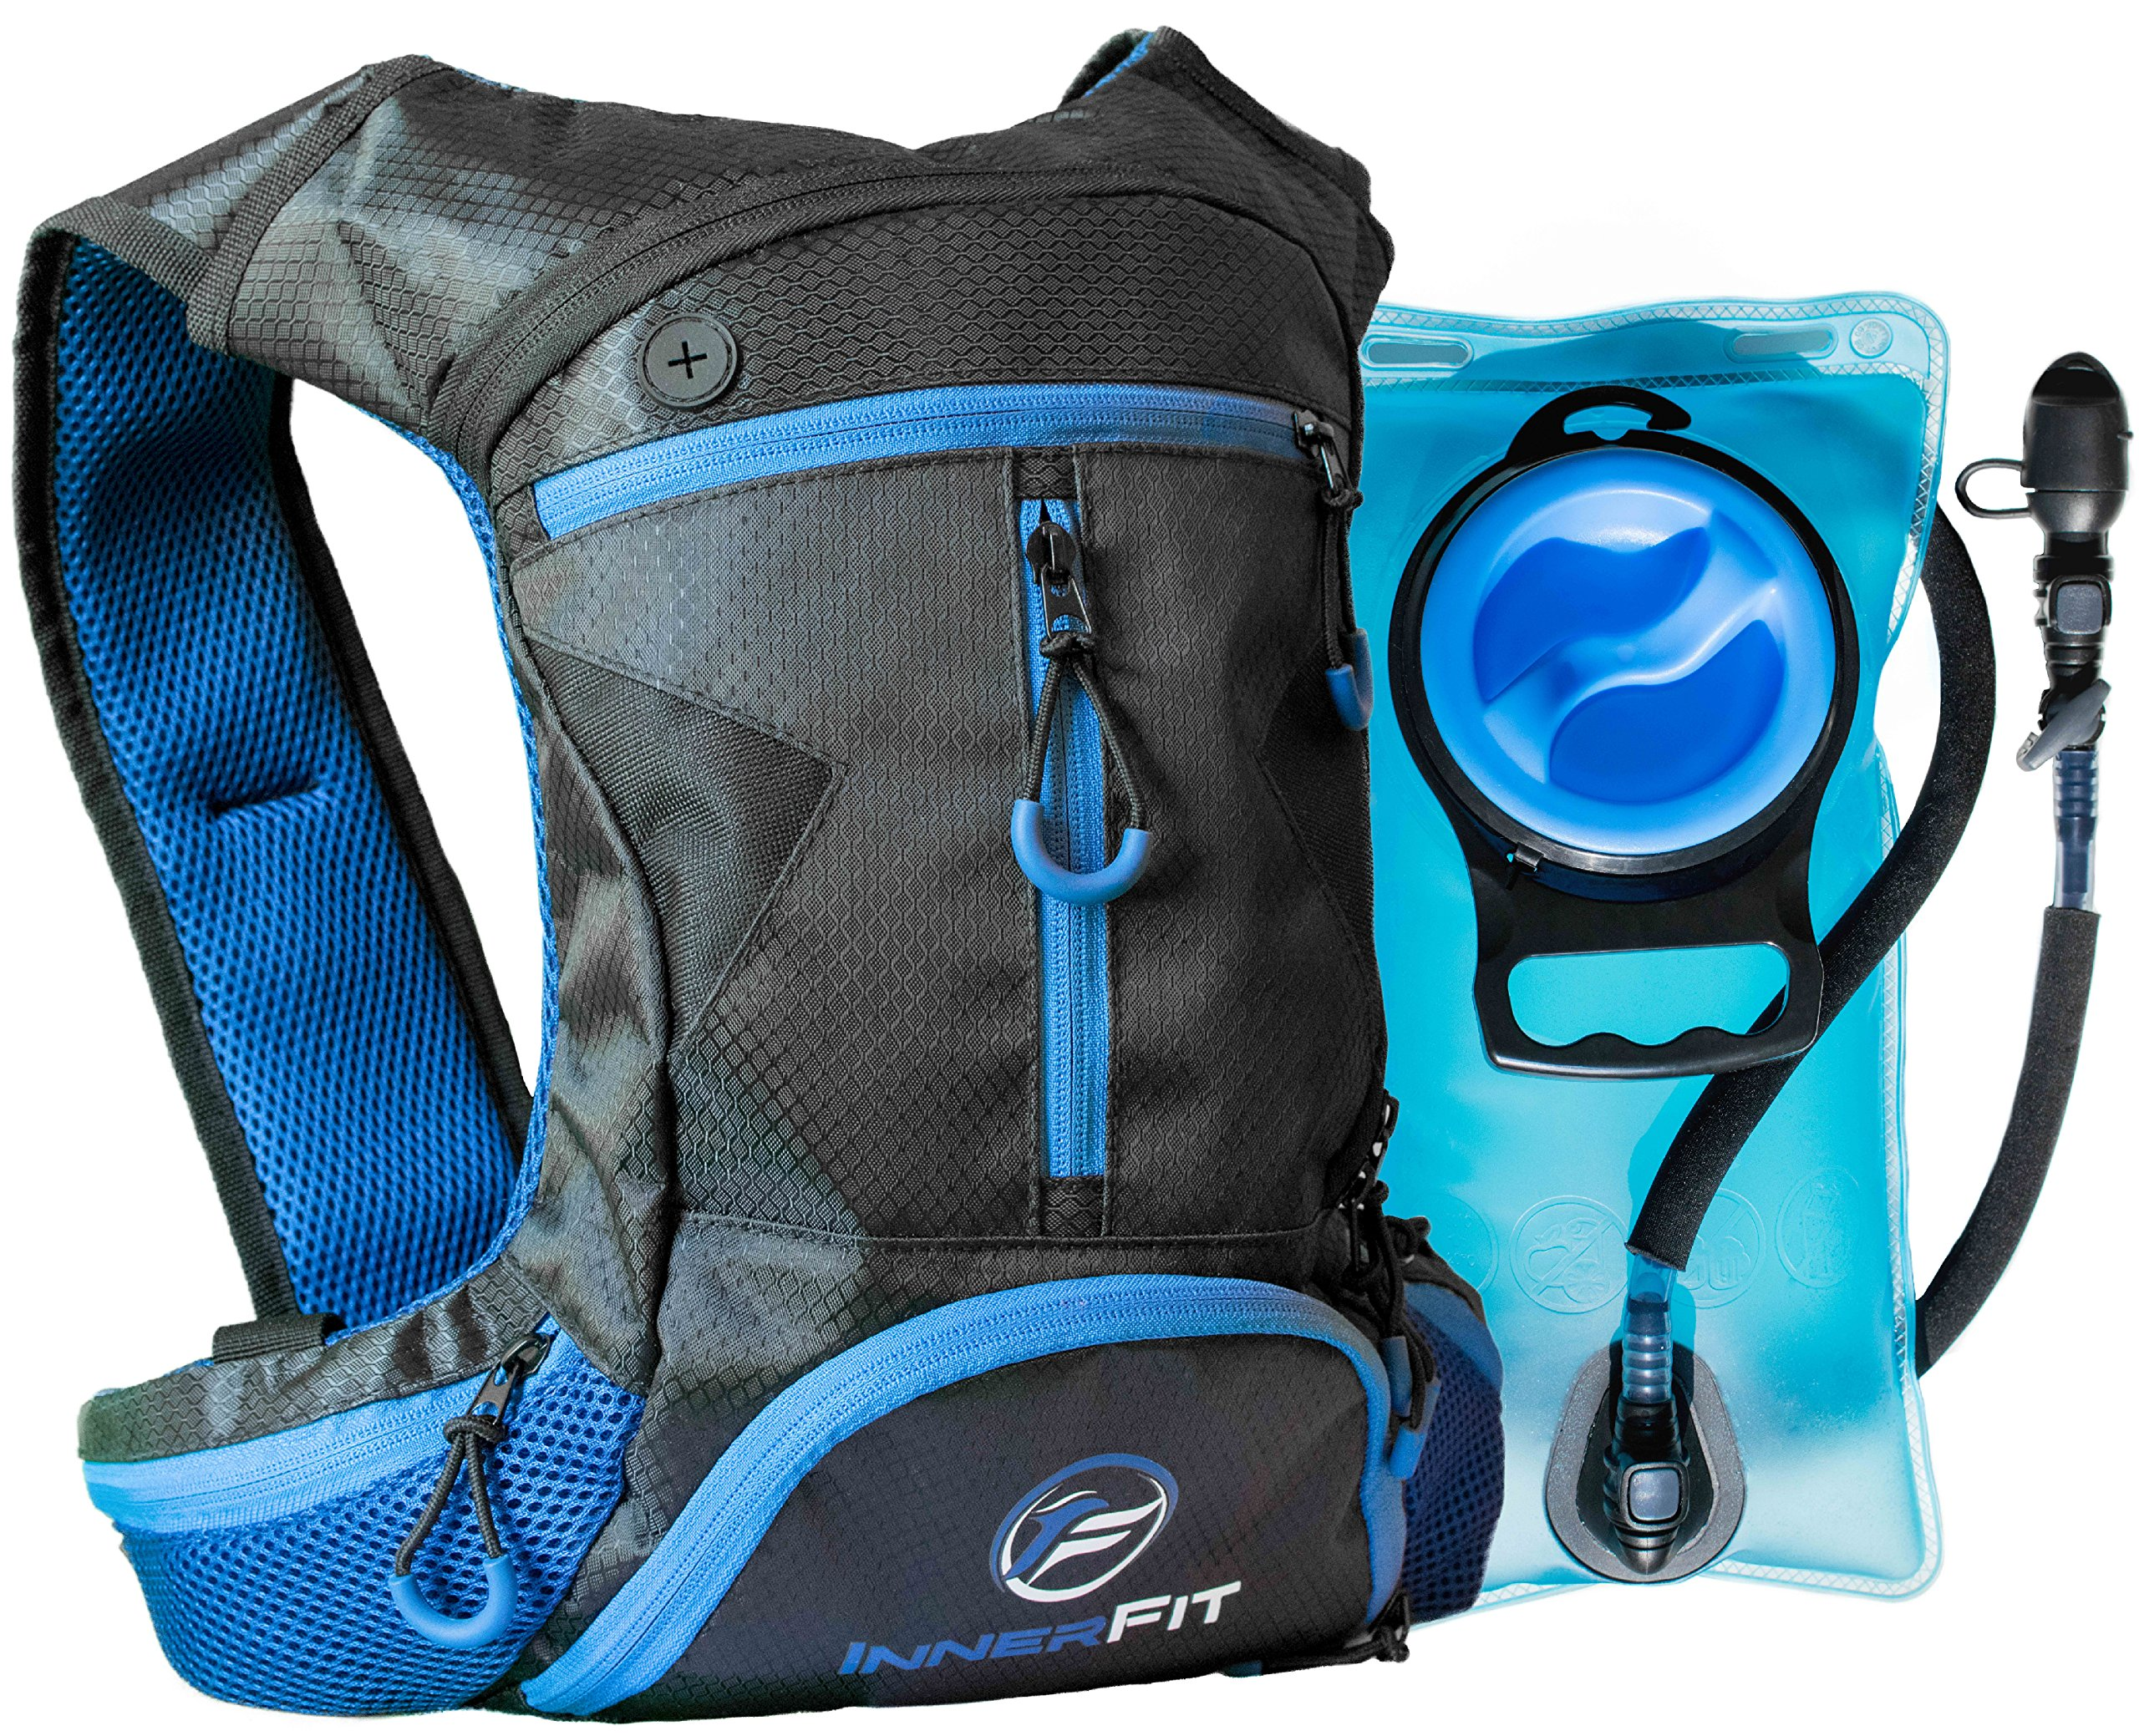 InnerFit Camel Backpack Hydration Pack with 1.5L Water Bladder for The Organized Outdoors Adventurer – Highly Durable – Versatile & Lightweight Hydration Backpack